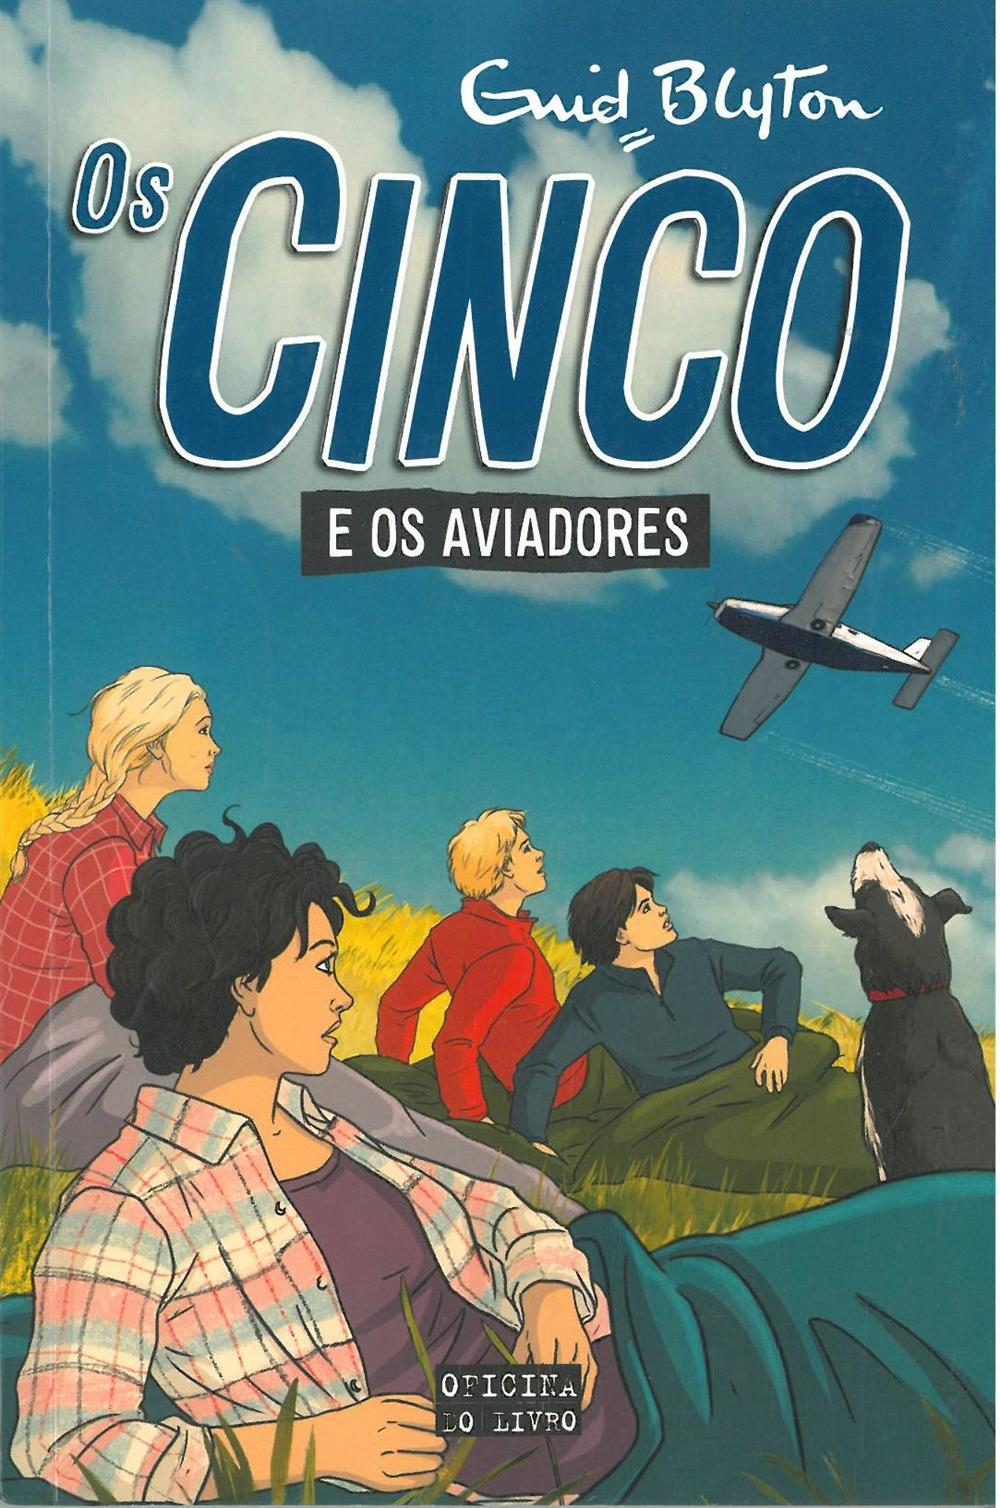 Os cinco e os aviadores_.jpg